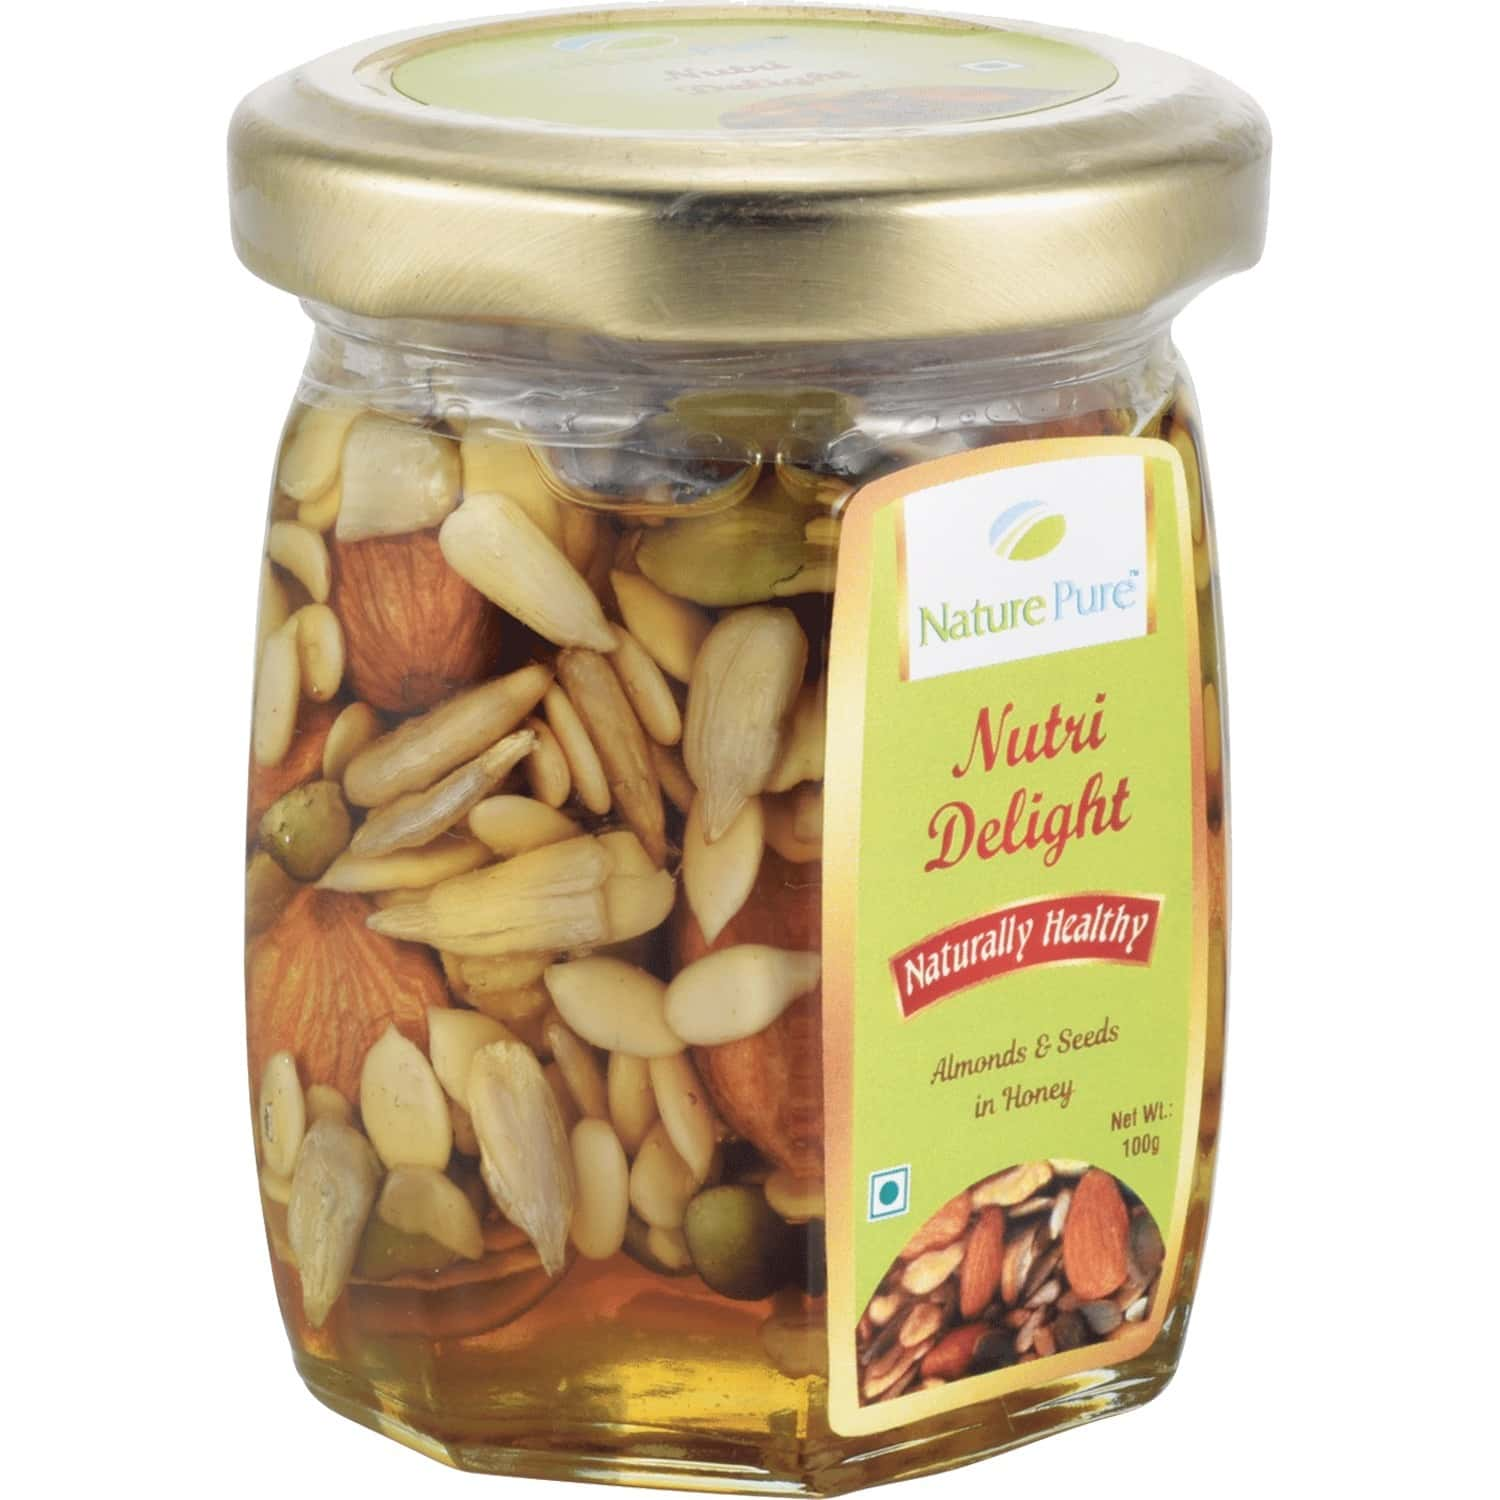 Nature Pure Nutri Delight Honey + Premium Quality Almonds & Seeds -pack Of 1 Jar X 100g